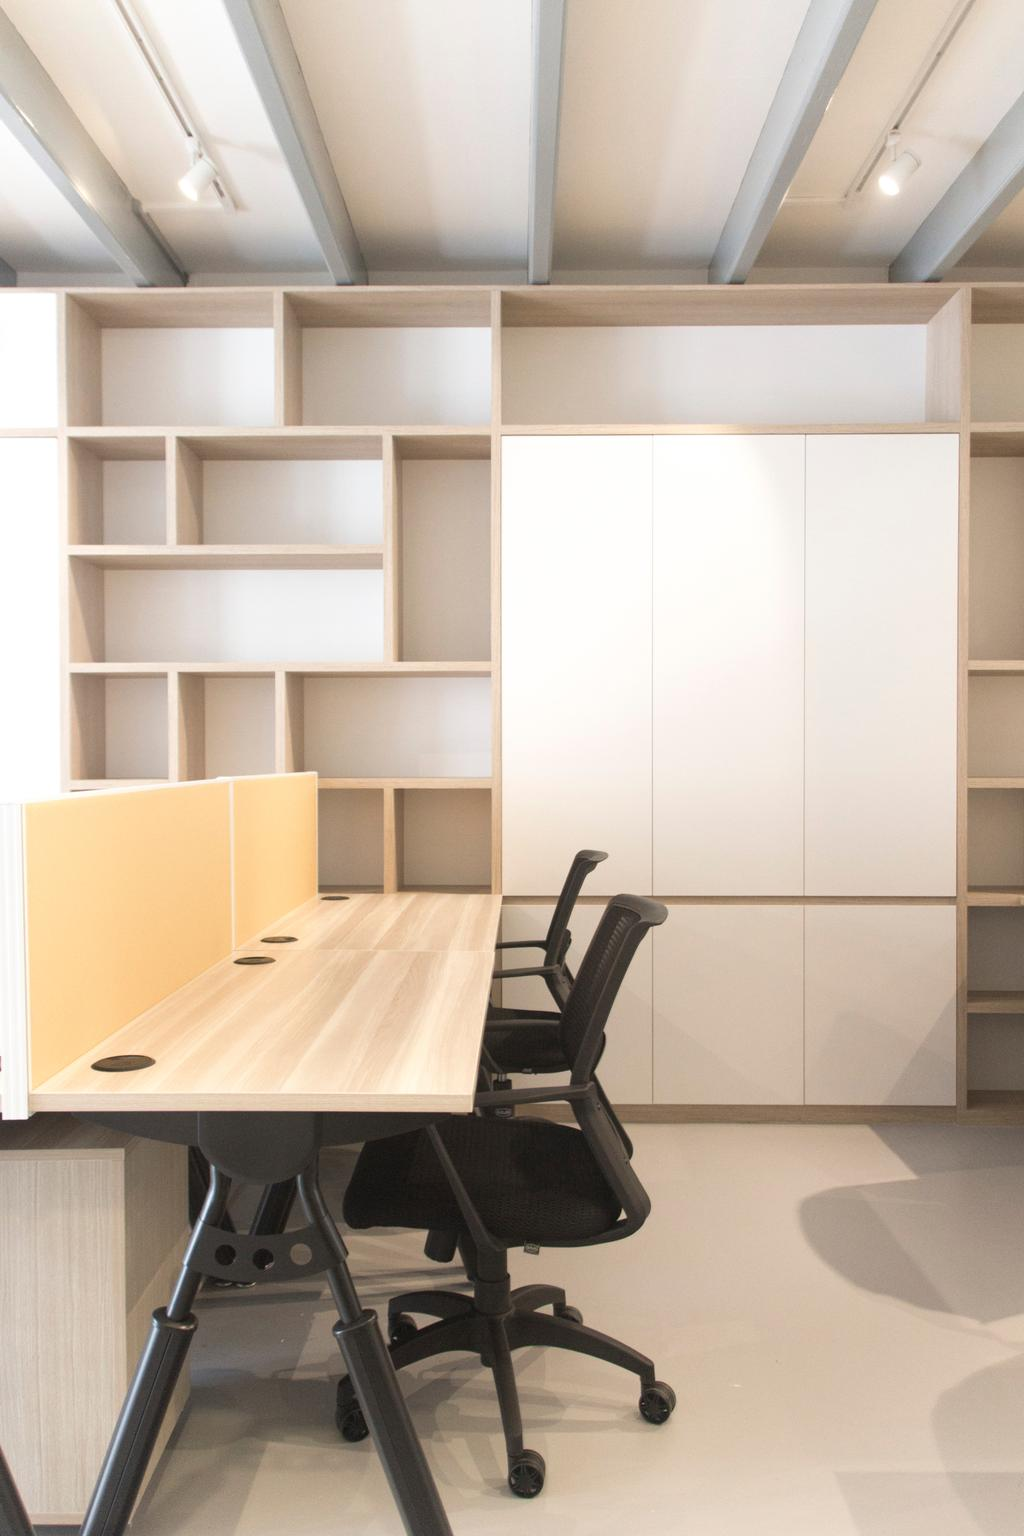 19 Cantonment, Commercial, Architect, PROVOLK ARCHITECTS, Modern, Cubicle, Work Desk, Cubbyhole, Cabinet, Furniture, Chair